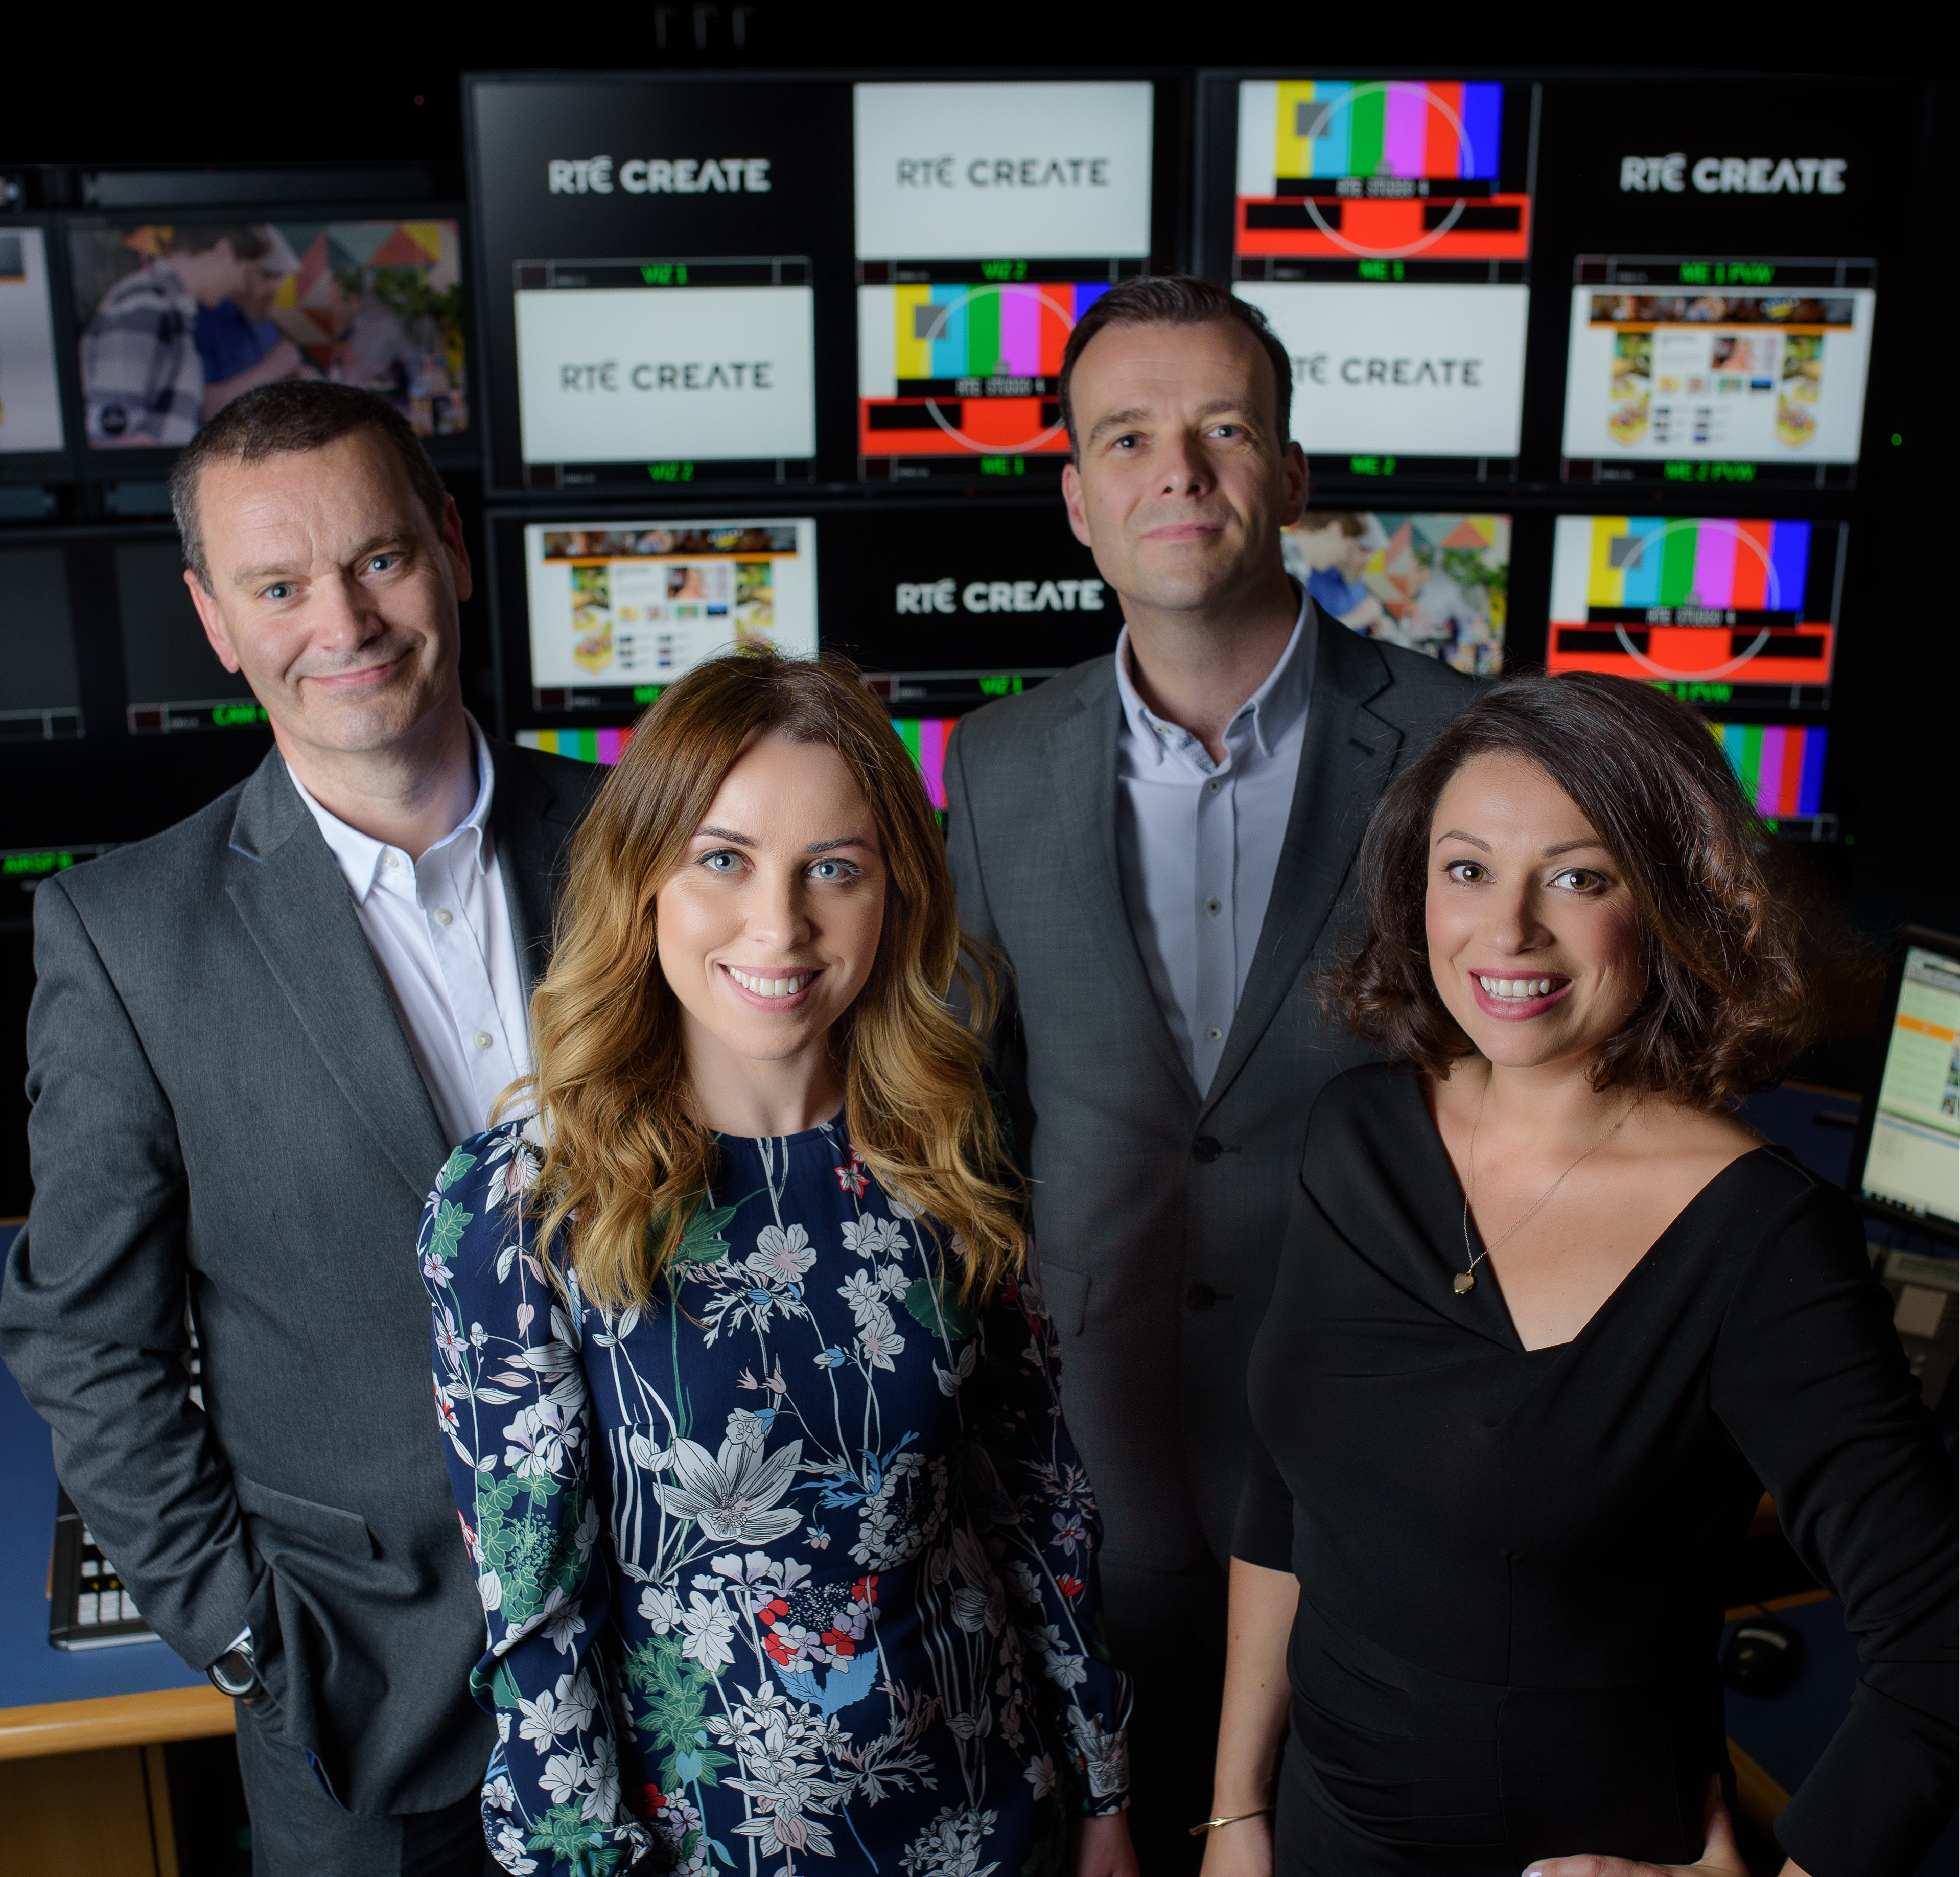 Left to right: Conor Mullen, Commercial Director, Cara Doyle, Branded Content Manager. Ken Nugent, Sales and Business Development Manager, SallyAnn King, Branded Content Manager